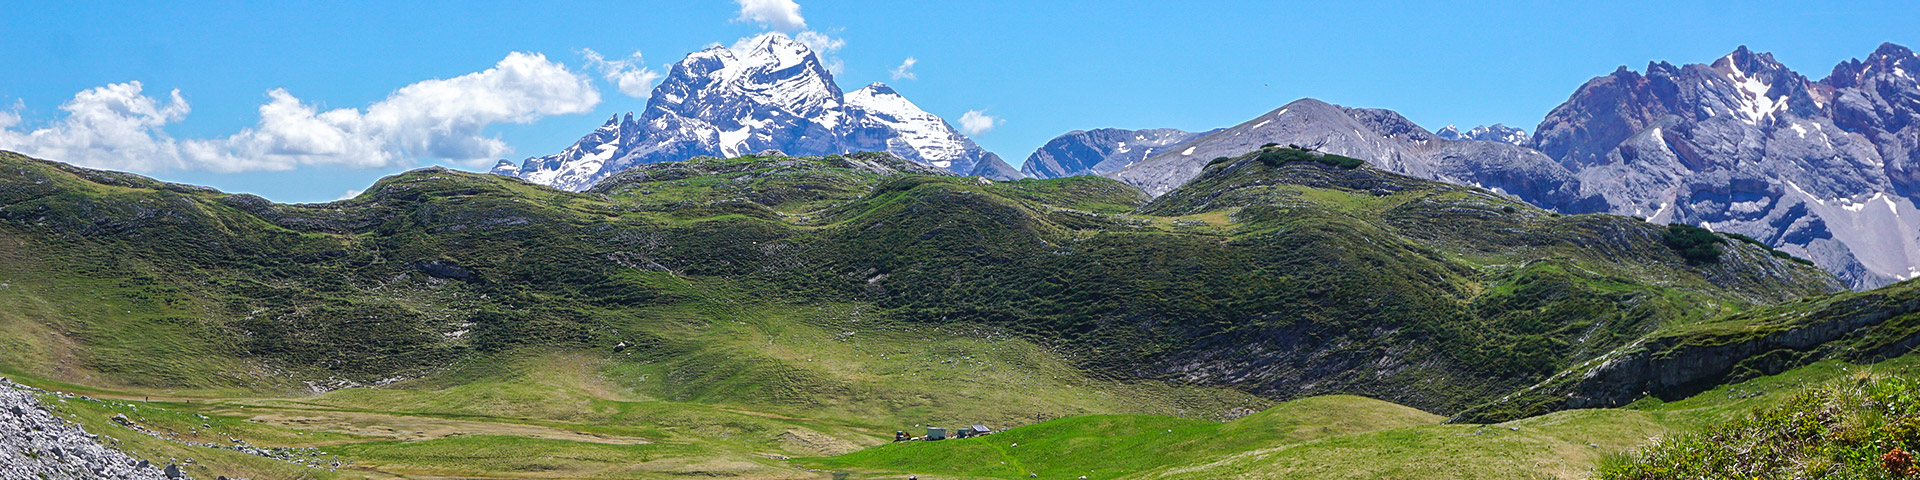 Panorama from the Alpi di Sennes hike in Dolomites, Italy